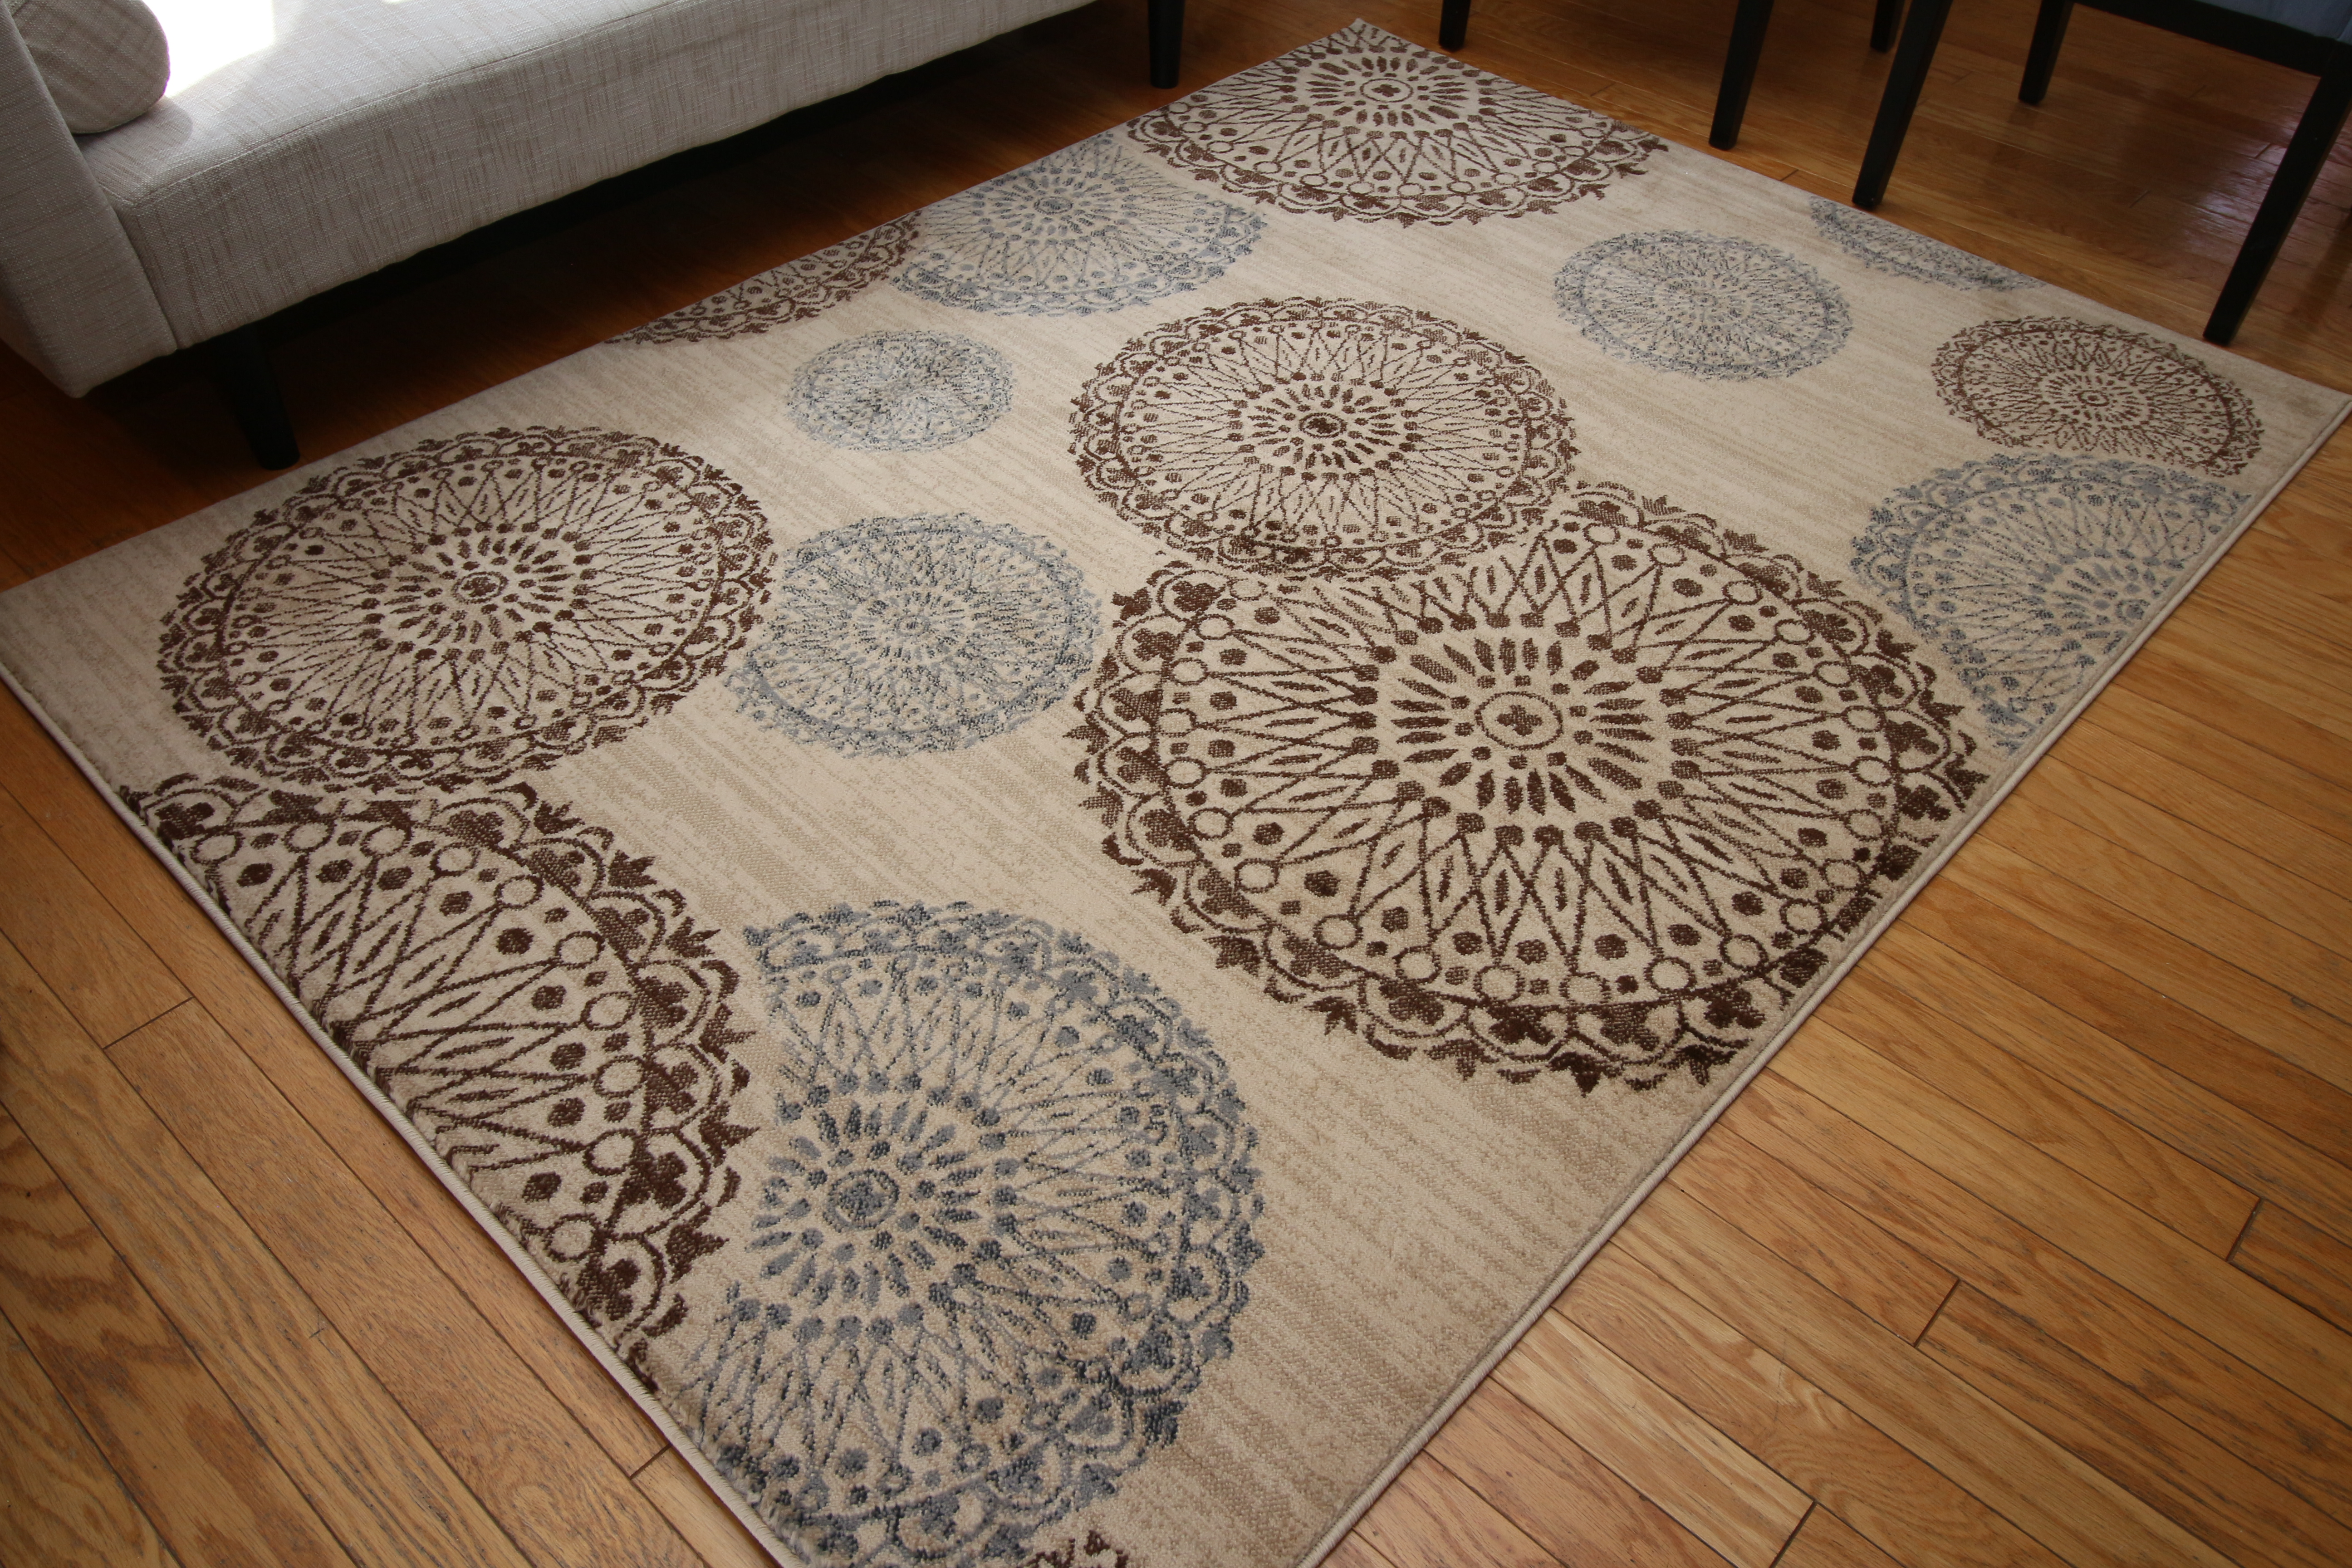 Handmade Area Rugs Woven Area Rug Collection Area Rugs